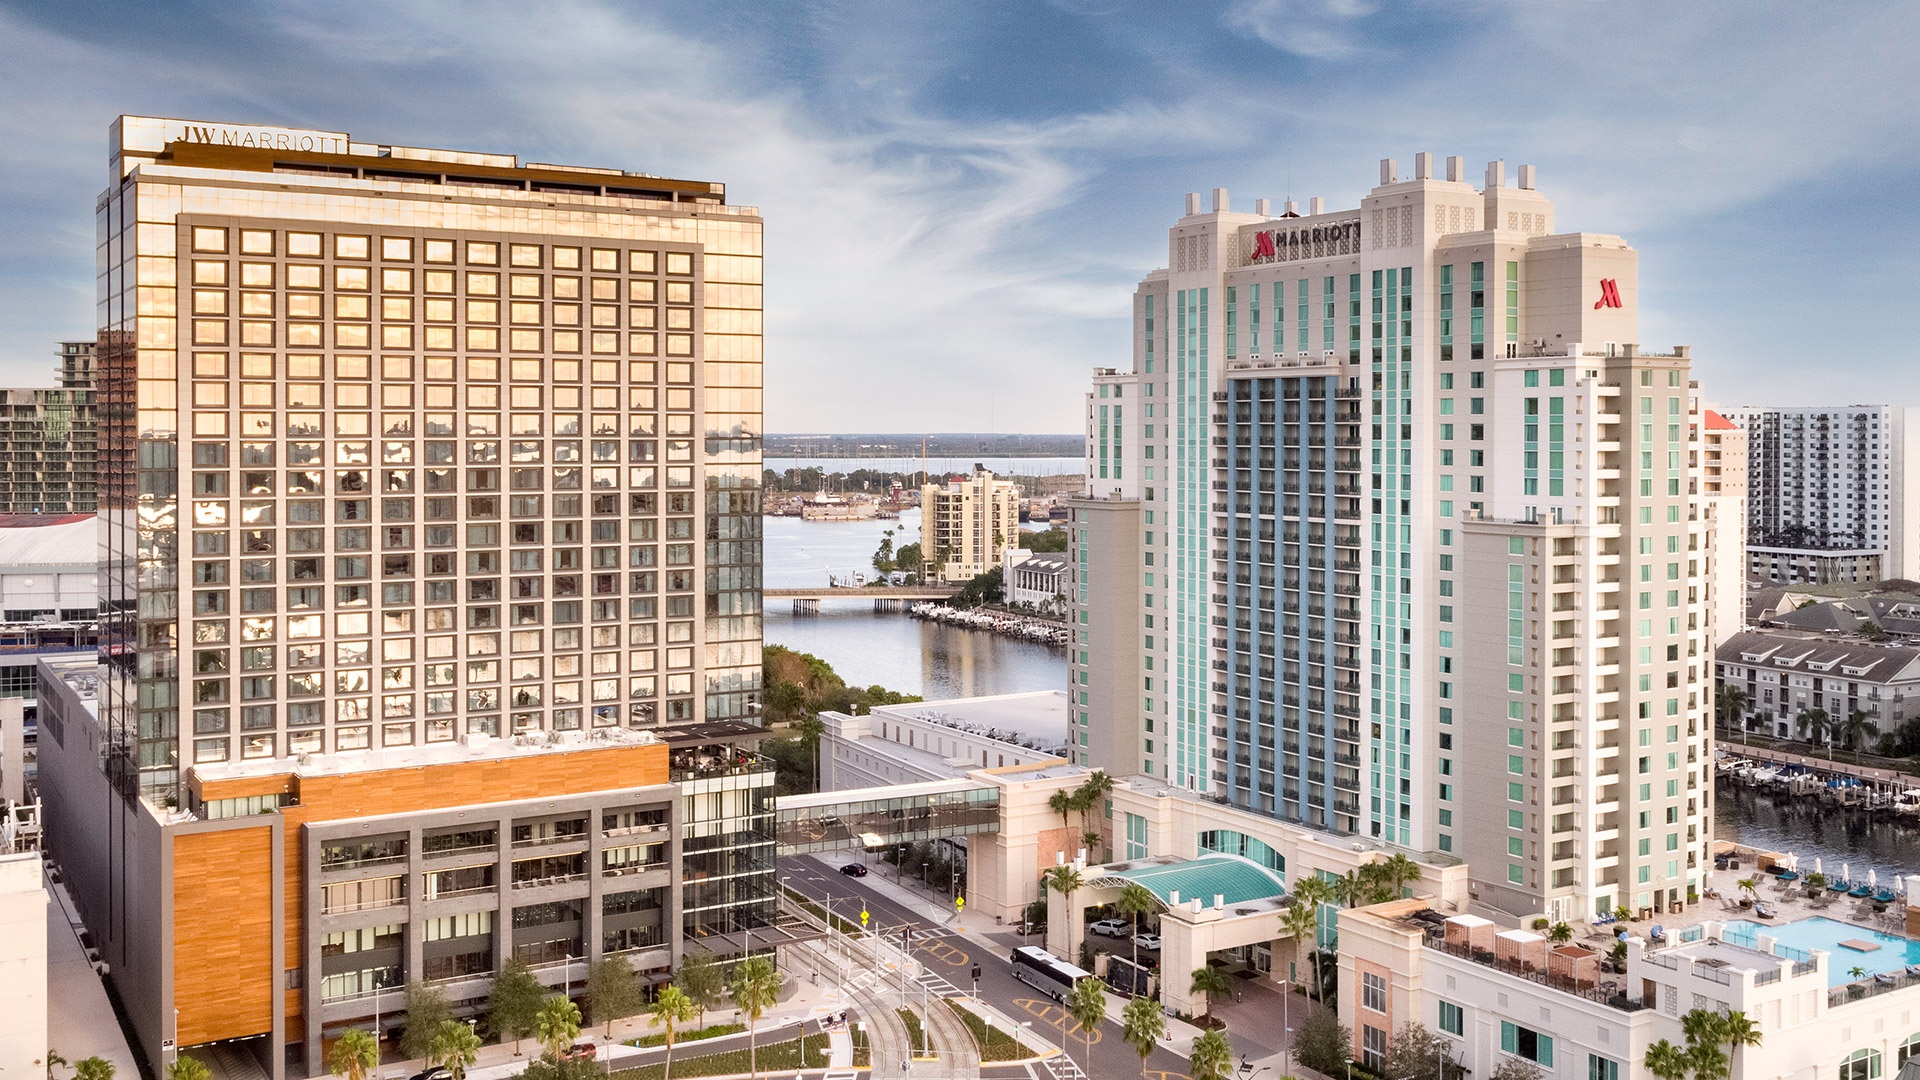 Tampa Hotels in Florida   Marriott Water Street Tampa Collection